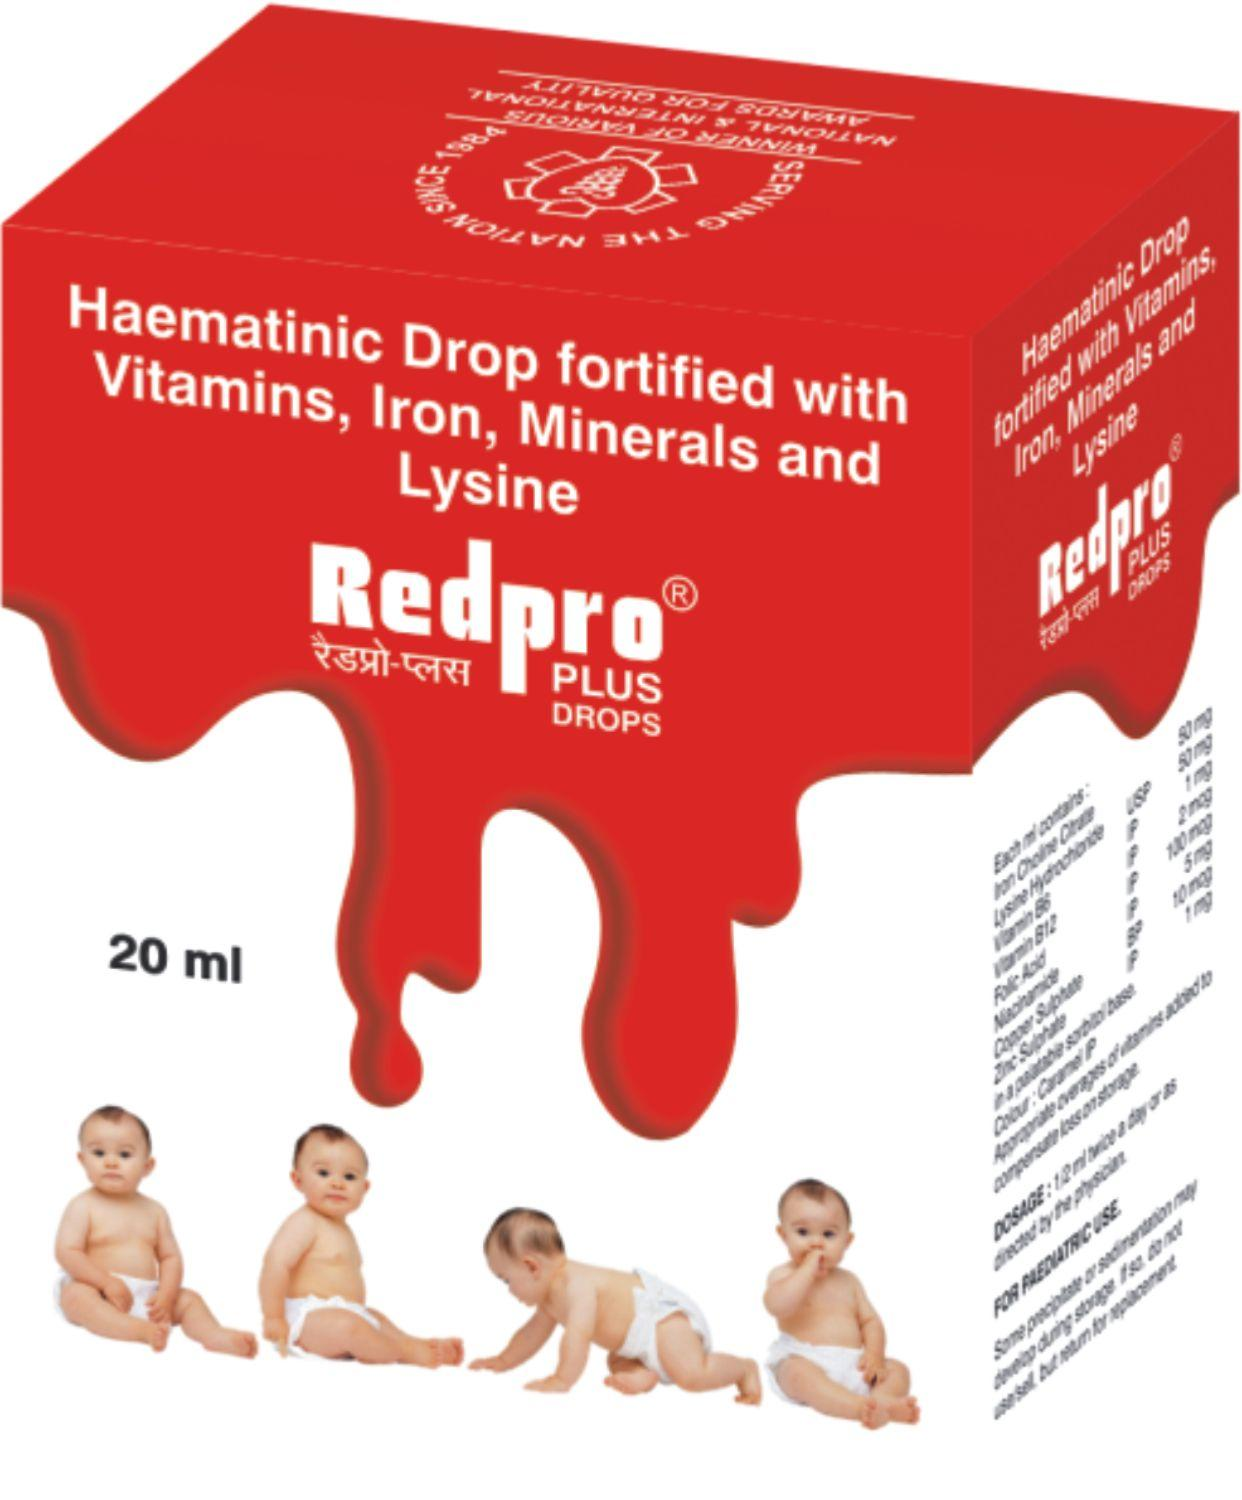 Redro Plus Drops